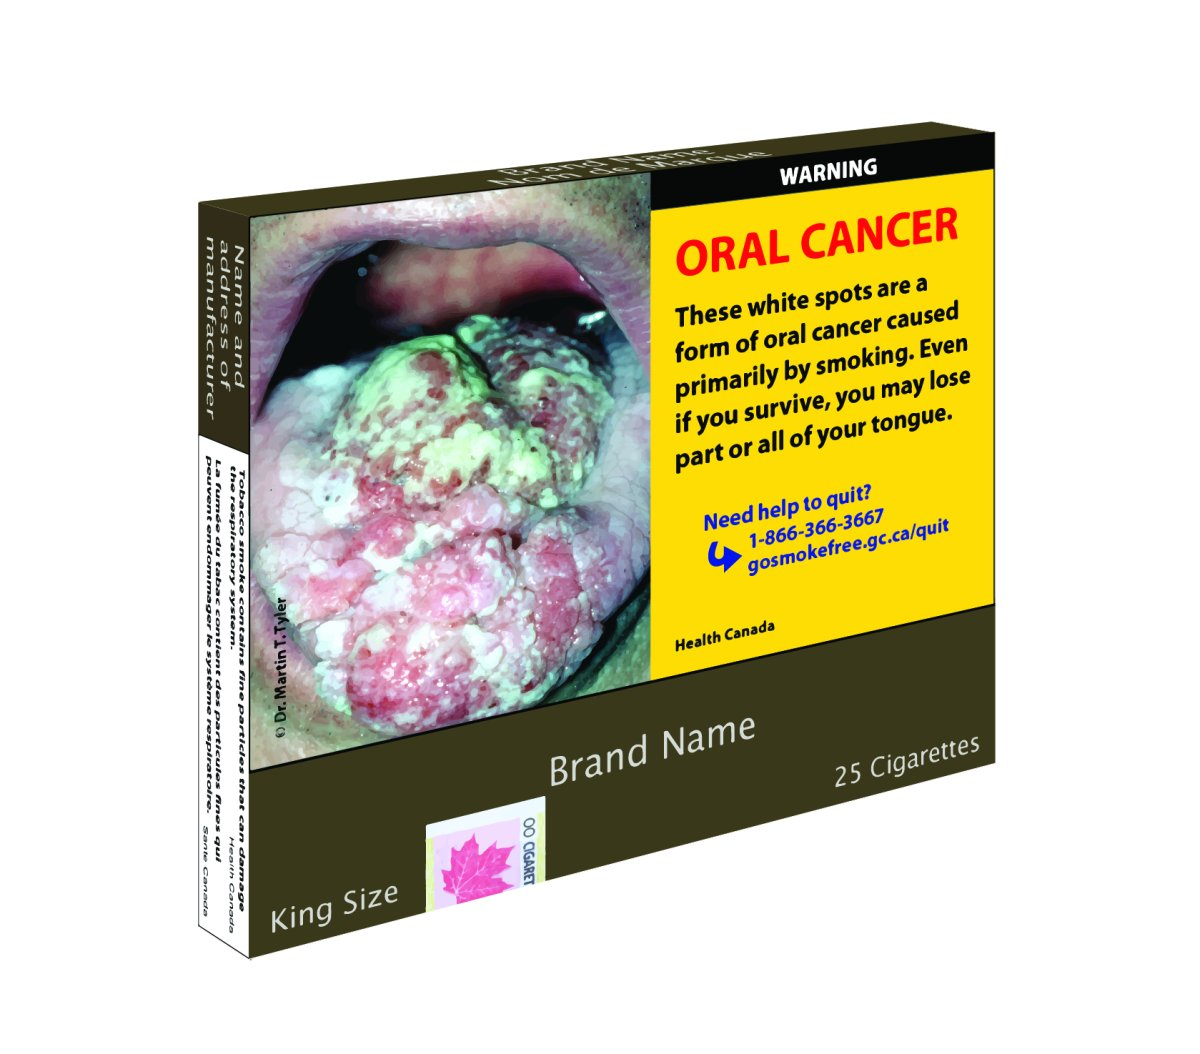 A Health Canada mockup of what plain cigarette packaging might look like if their proposed regulations are passed.